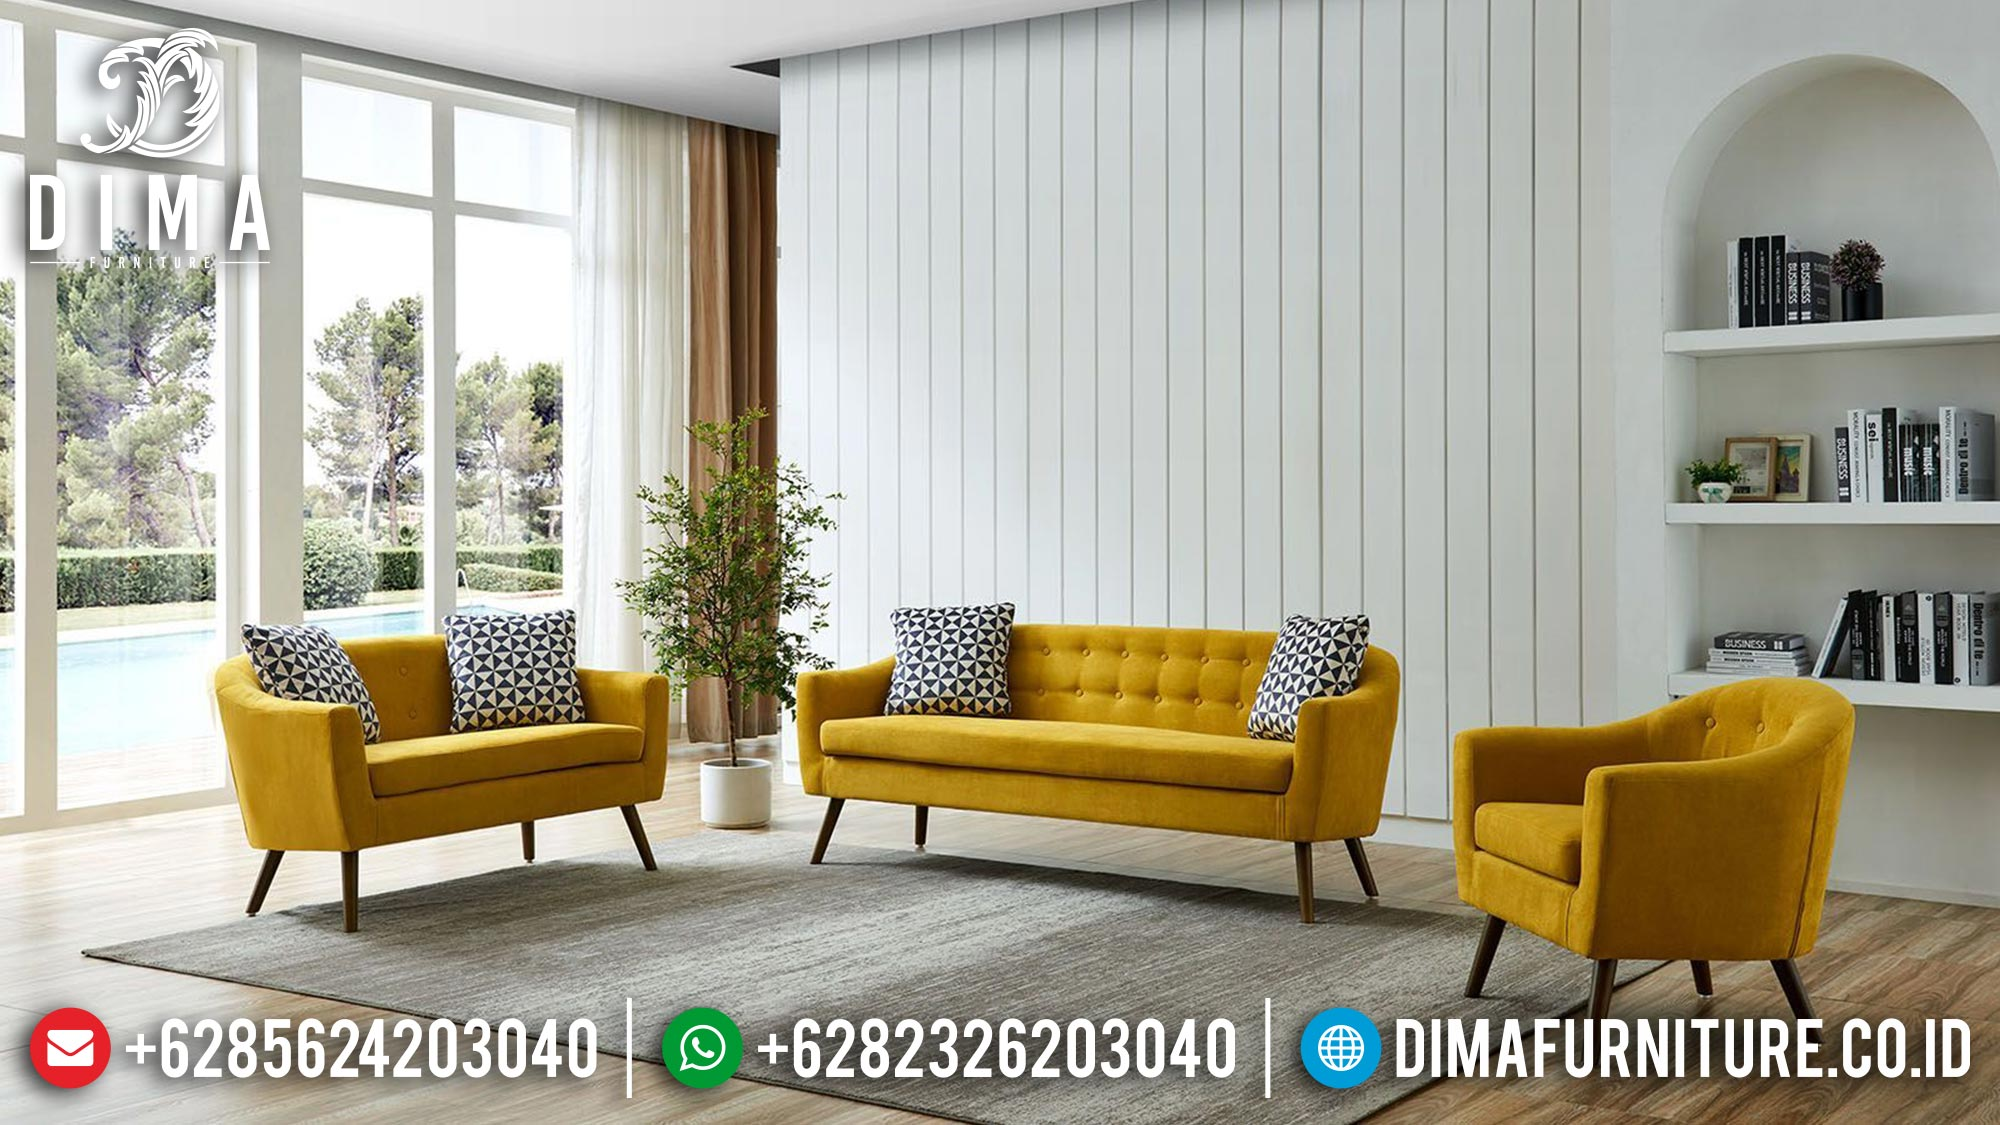 Desain Sofa Tamu Minimalis Classic Vintage Retro Best Seller Now Mm-0972